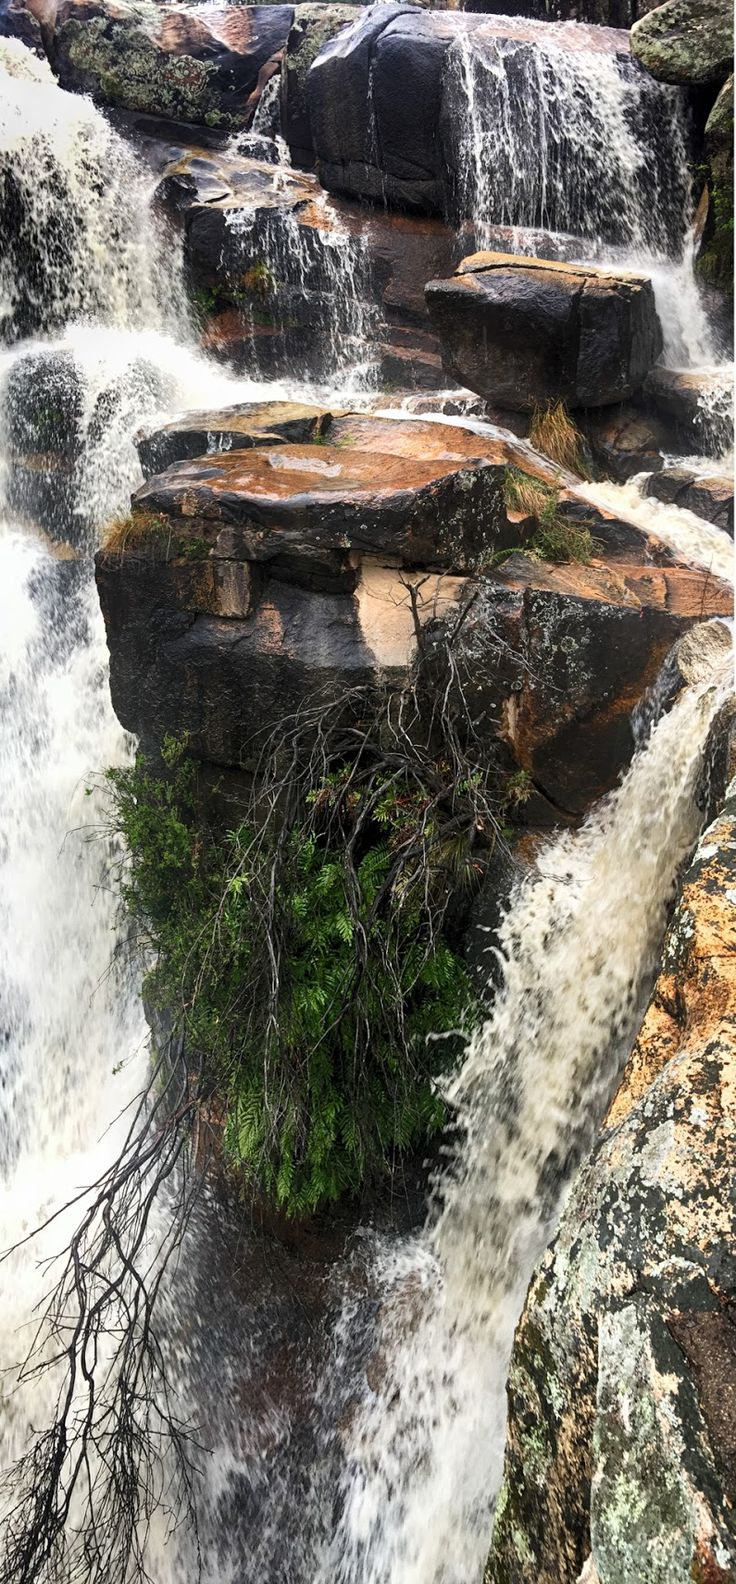 """Orphaned Rock Flooding rains struck Canberra today with up to 150mm (6"""") in an hour or so in some places. I headed to nearby Namadgi National Park to ca... - Peter Quinton - Google+"""